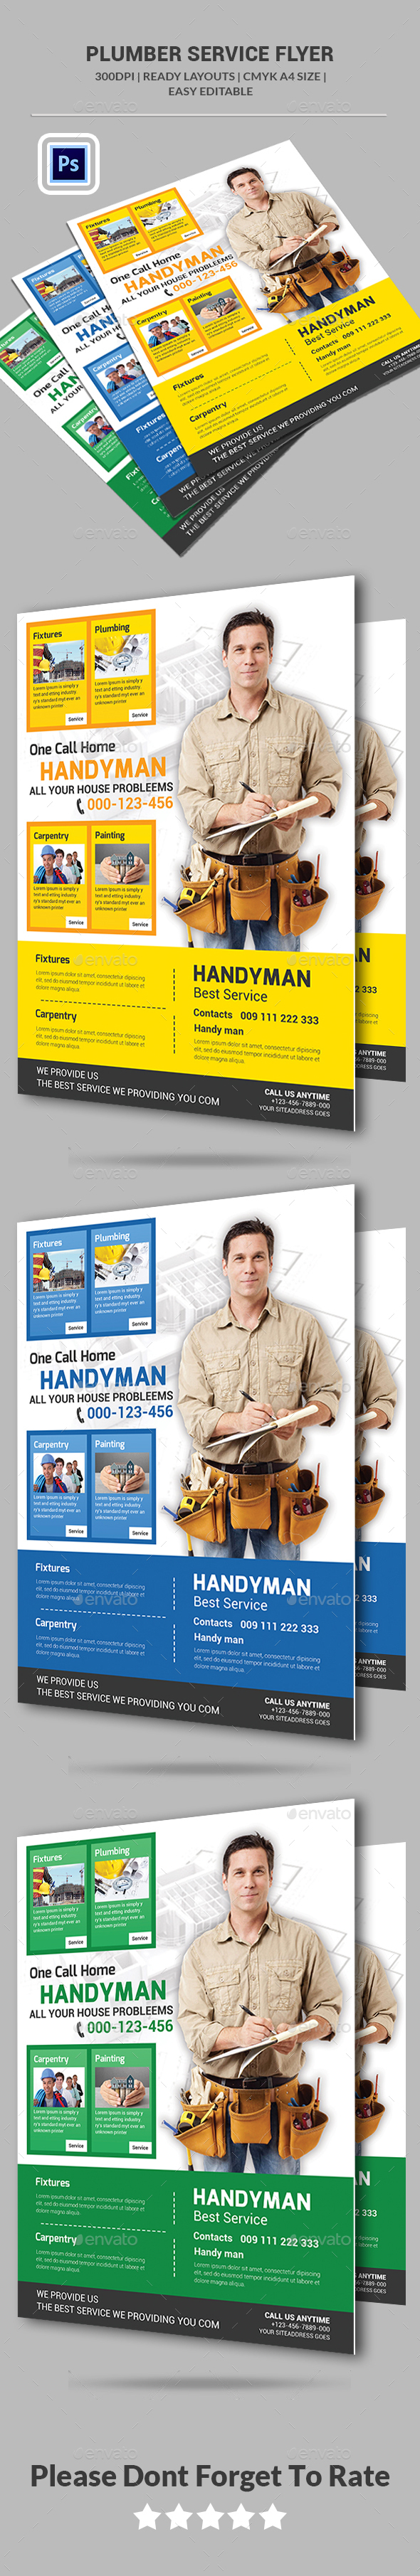 Plumber Service Flyer Templates  - Corporate Flyers